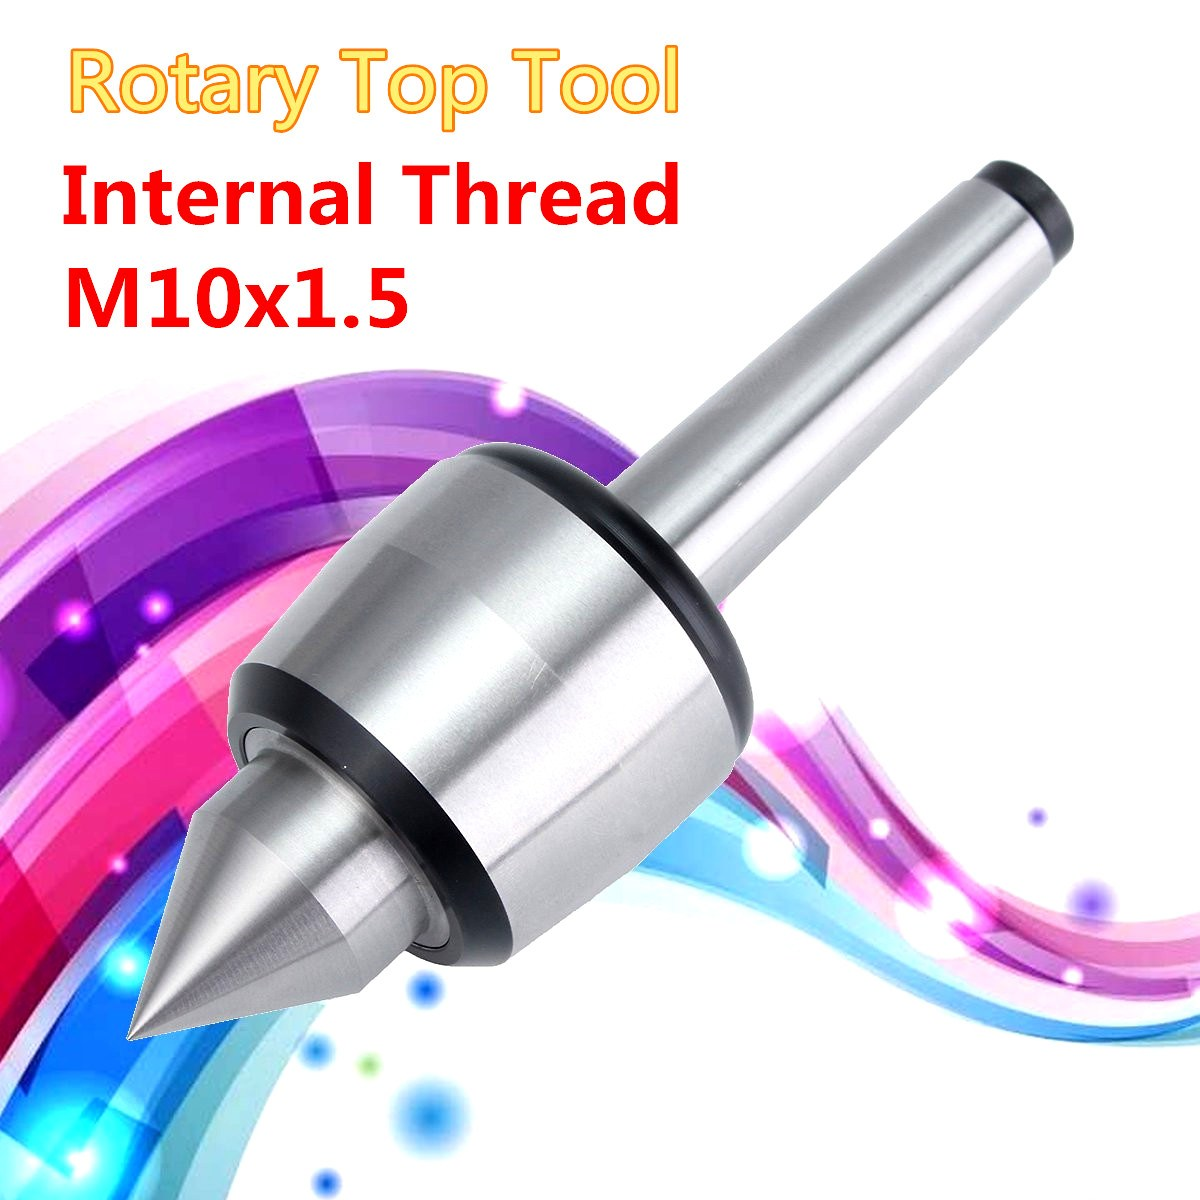 Internal Thread Insert type live center Rotary Top Precision Rotary Live Center Shaft Taper For M10x1.5 MT2 MK2 milling Lathe-us gktools live centre rotation center cone z019 used for mini multifunction lathe